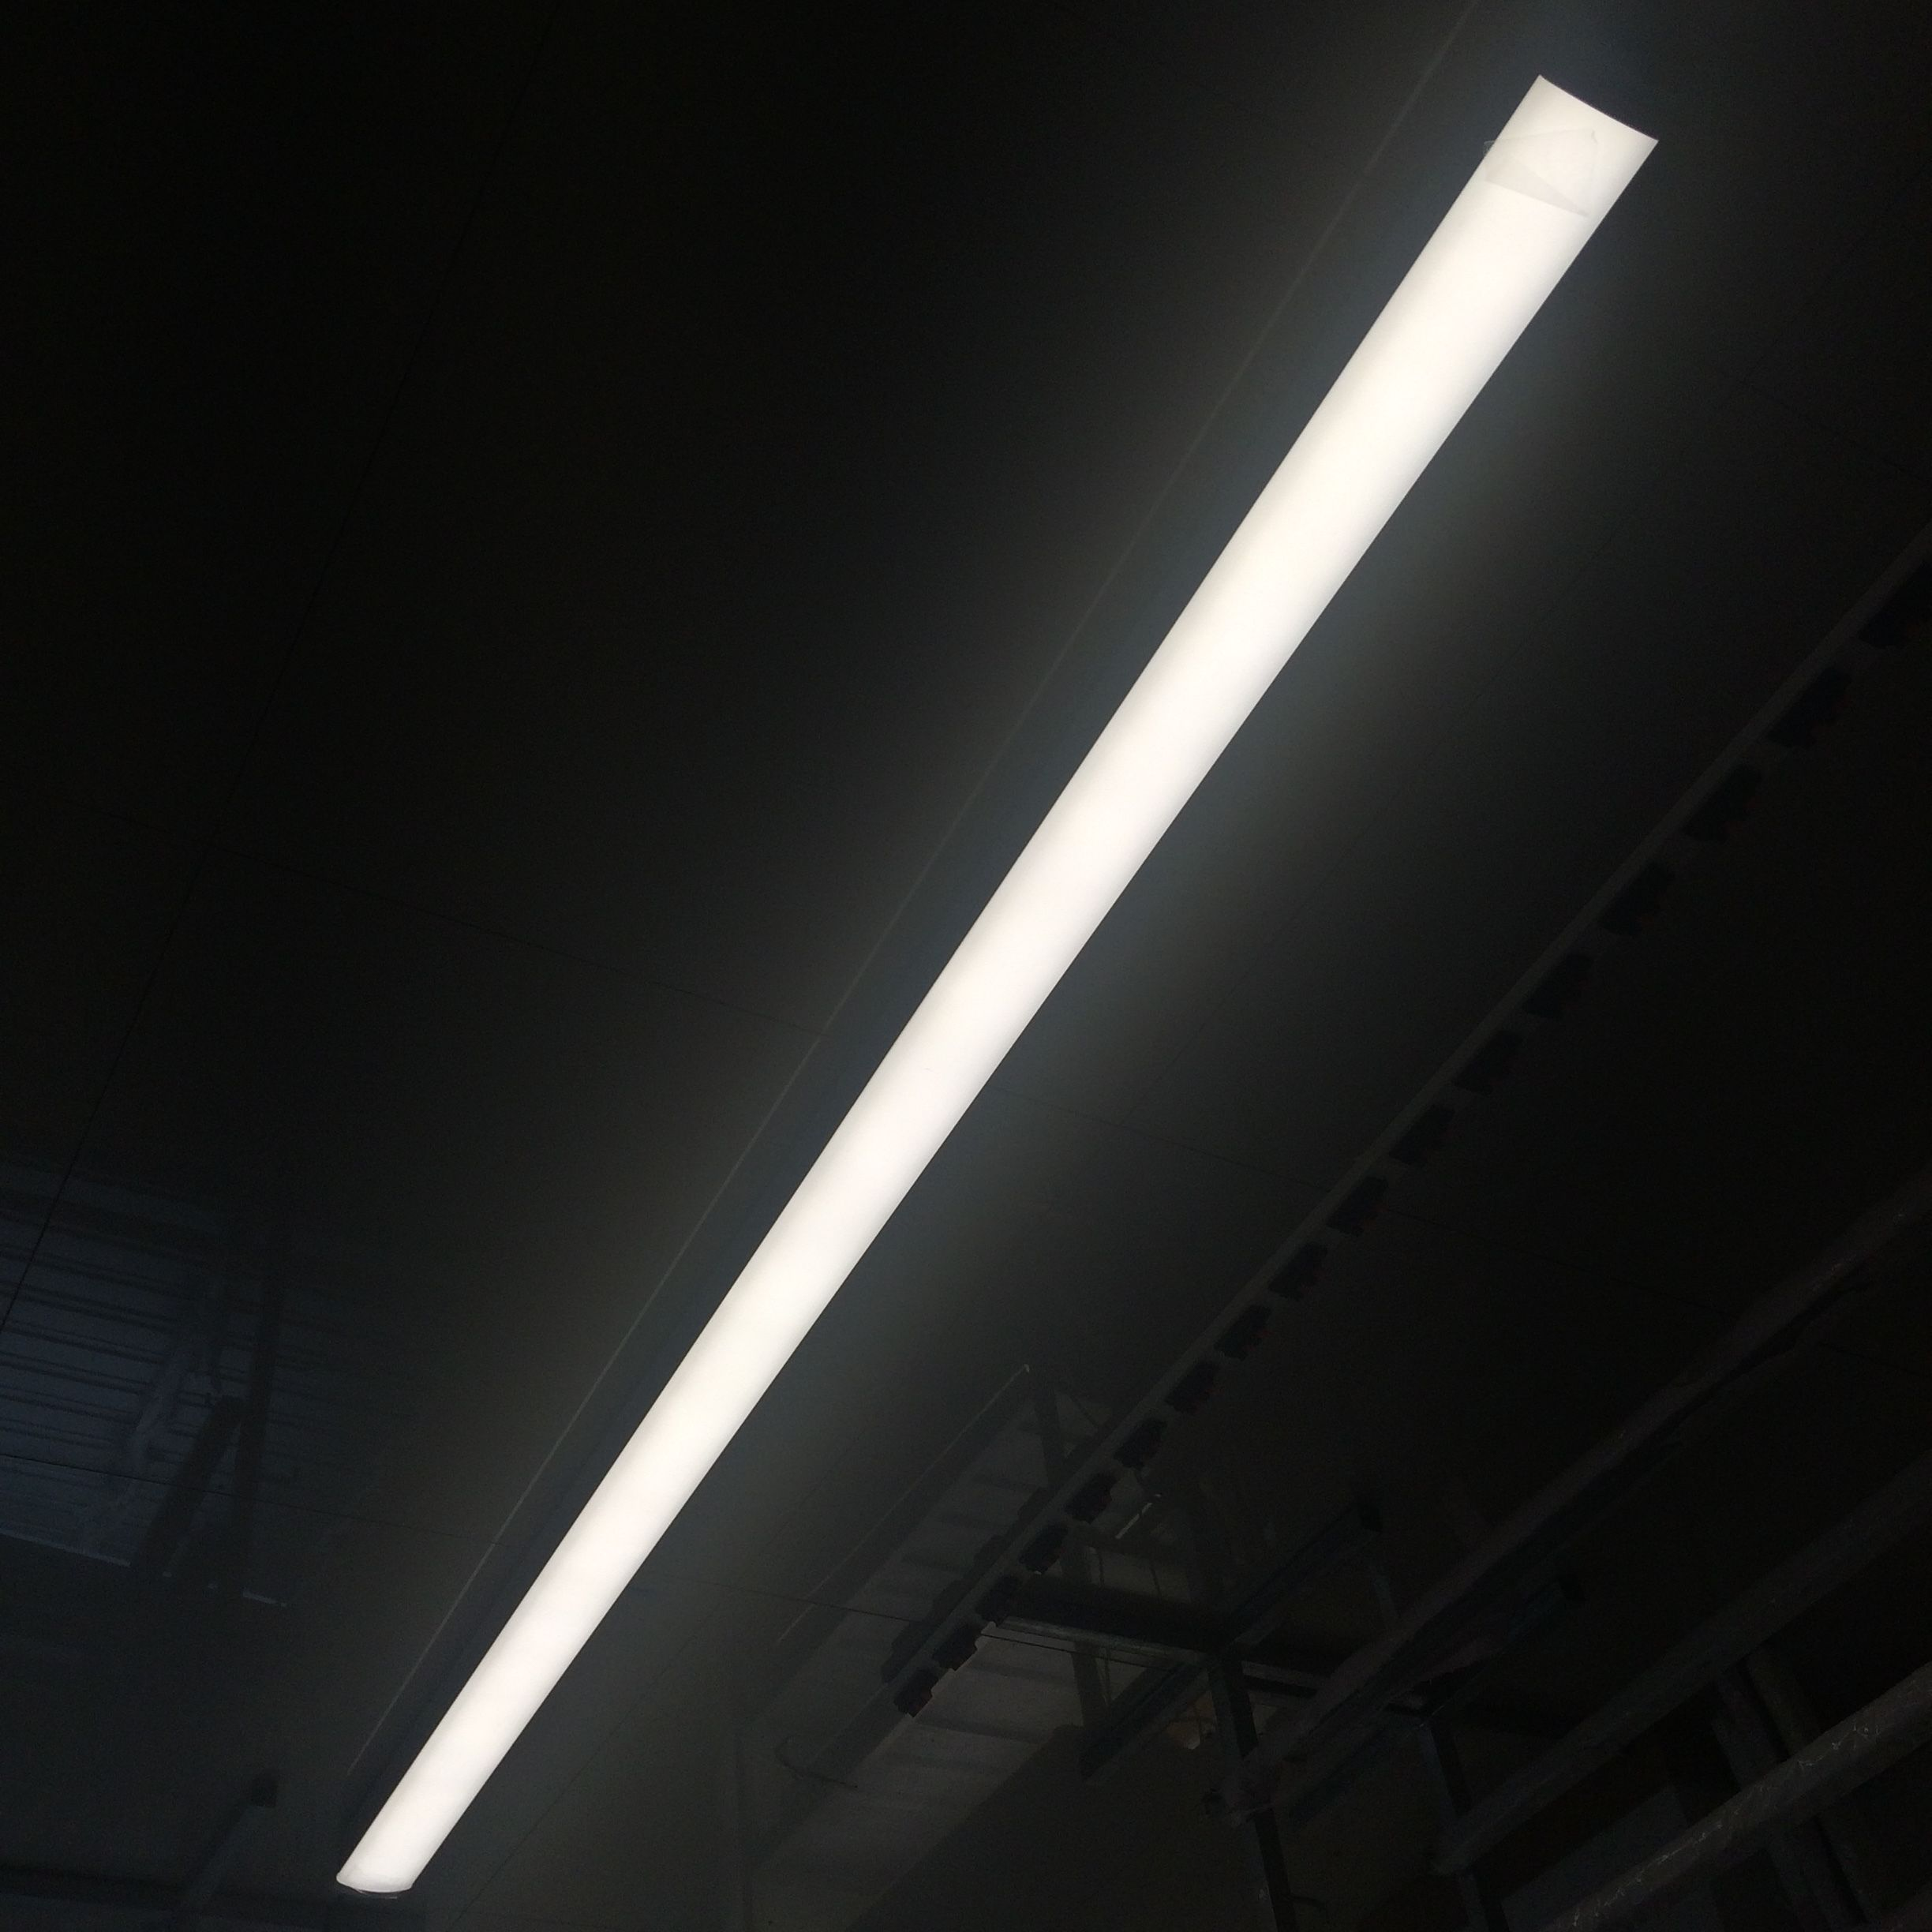 8 Foot 120 Watt Led Linear Vapor Tight Fixture Tri Proof Light Vapor Proof Led Luminaire Linear Lighting Led Grow Lights Light